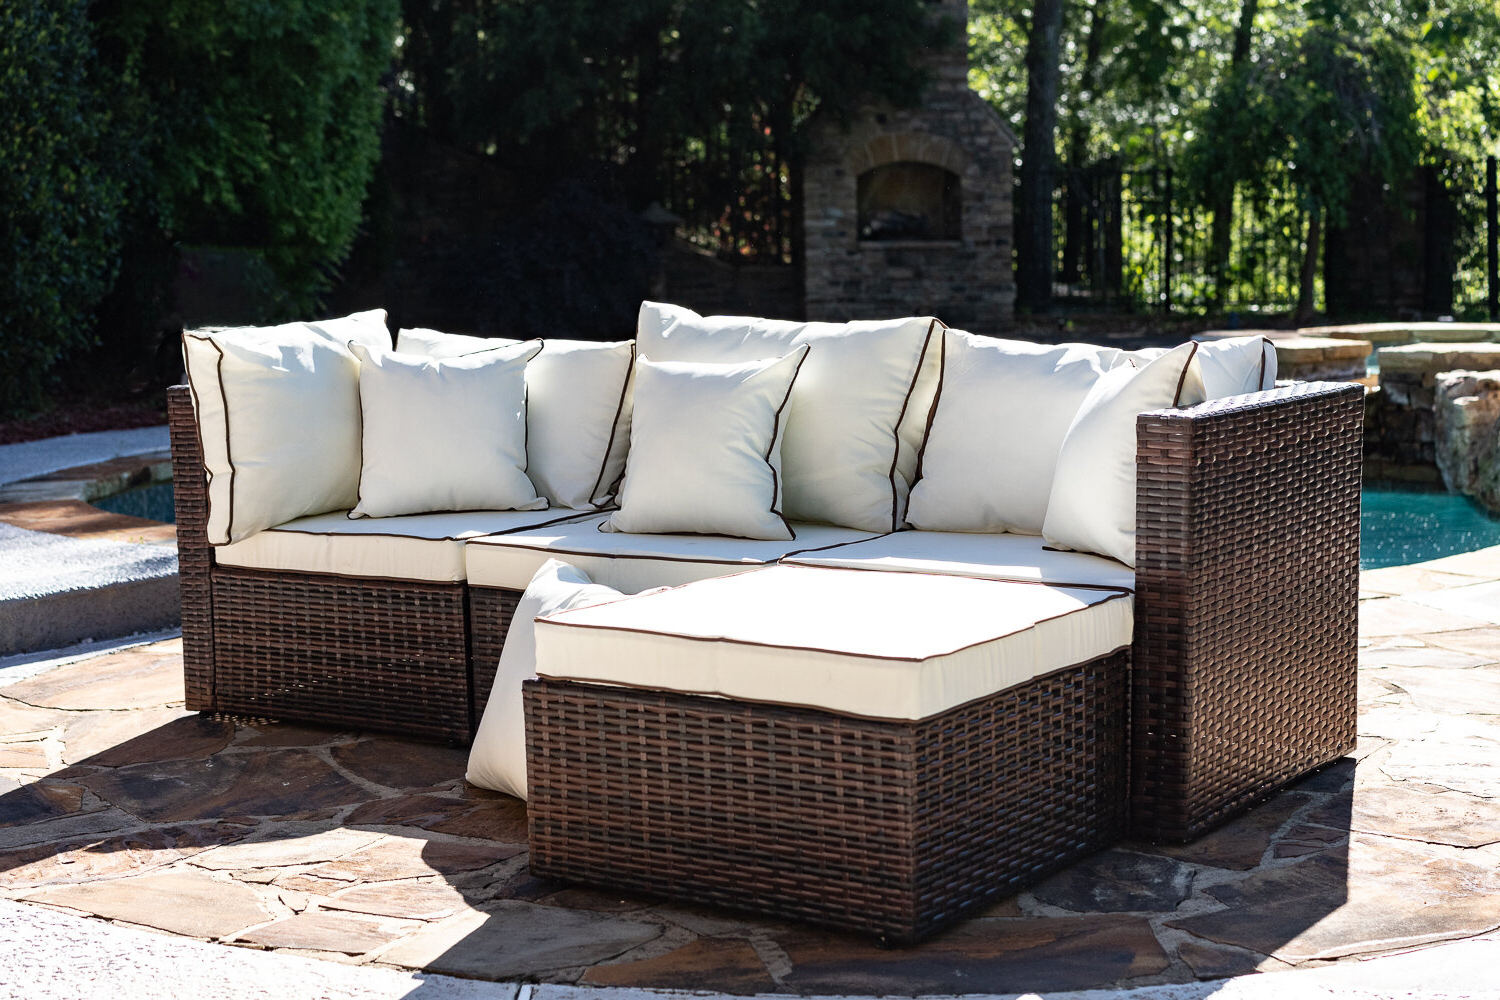 Birch Lane Throughout Meeks Patio Sofas With Cushions (View 6 of 20)